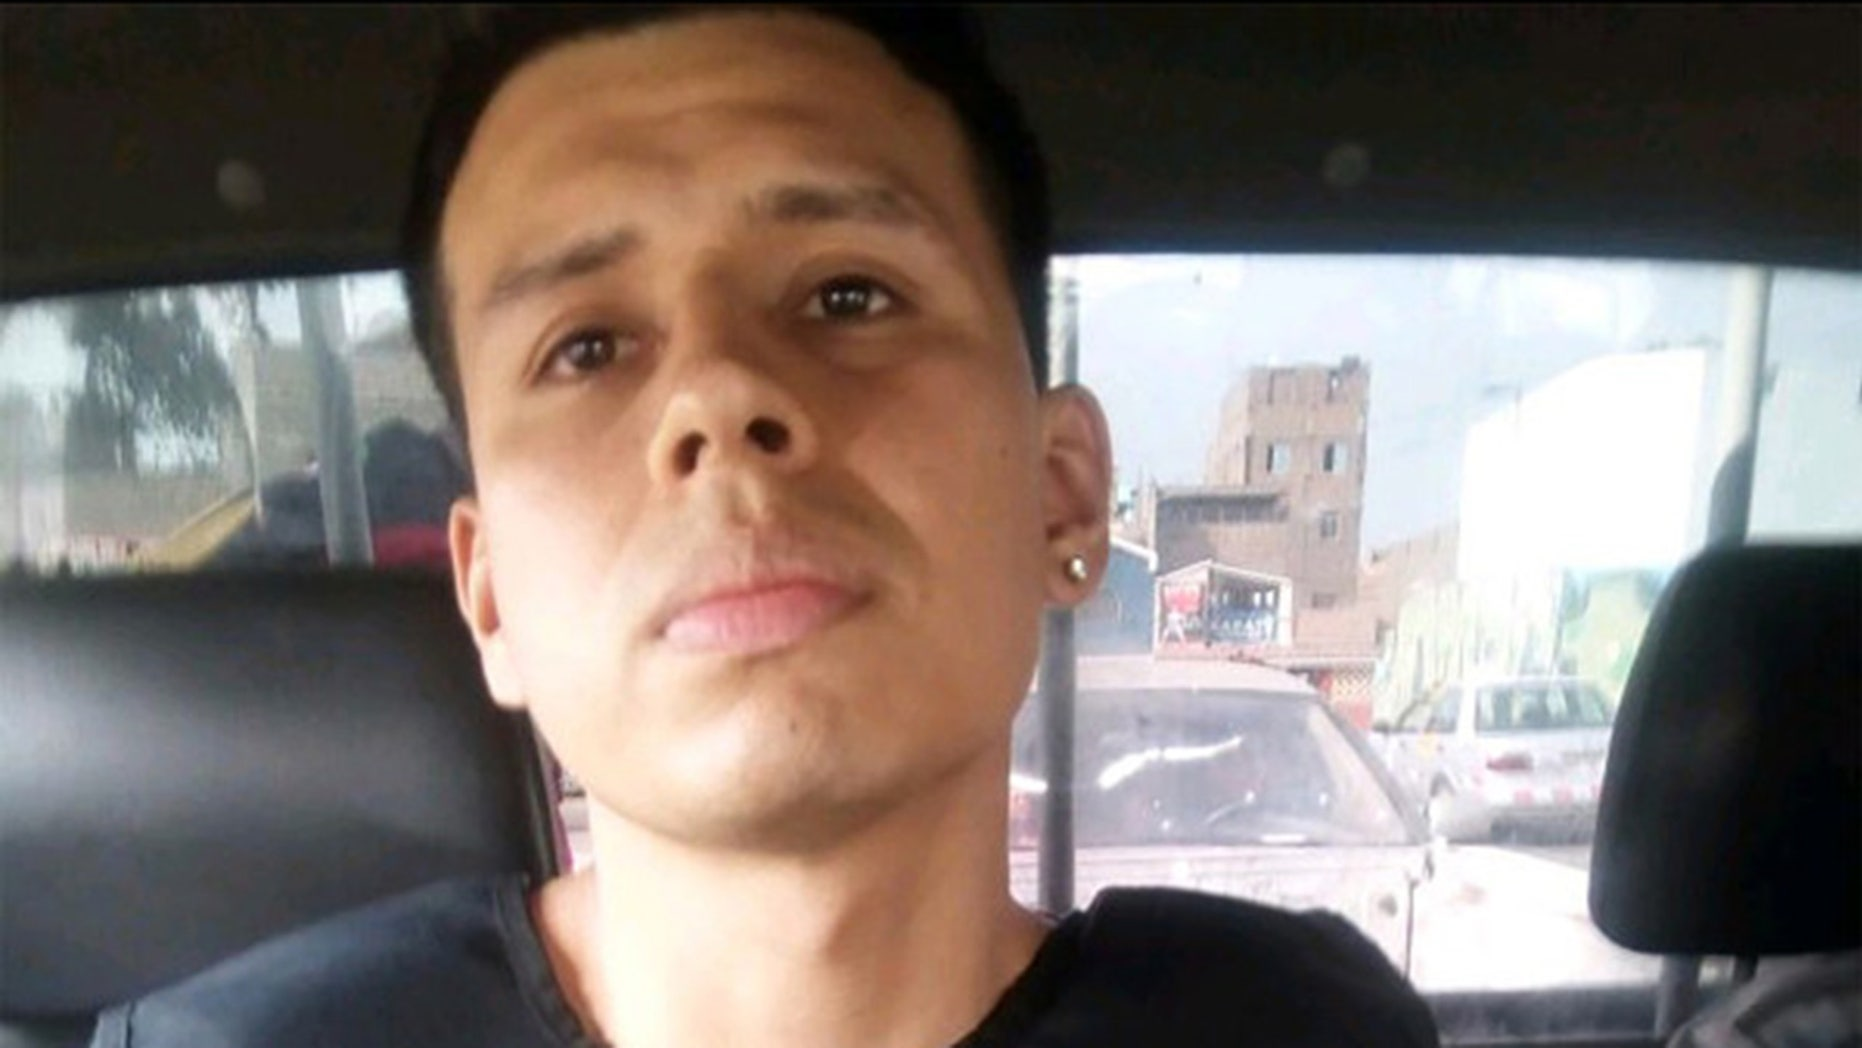 Peru authorities said Alexander Delgado drugged his brother and swapped places with him to escape from prison.